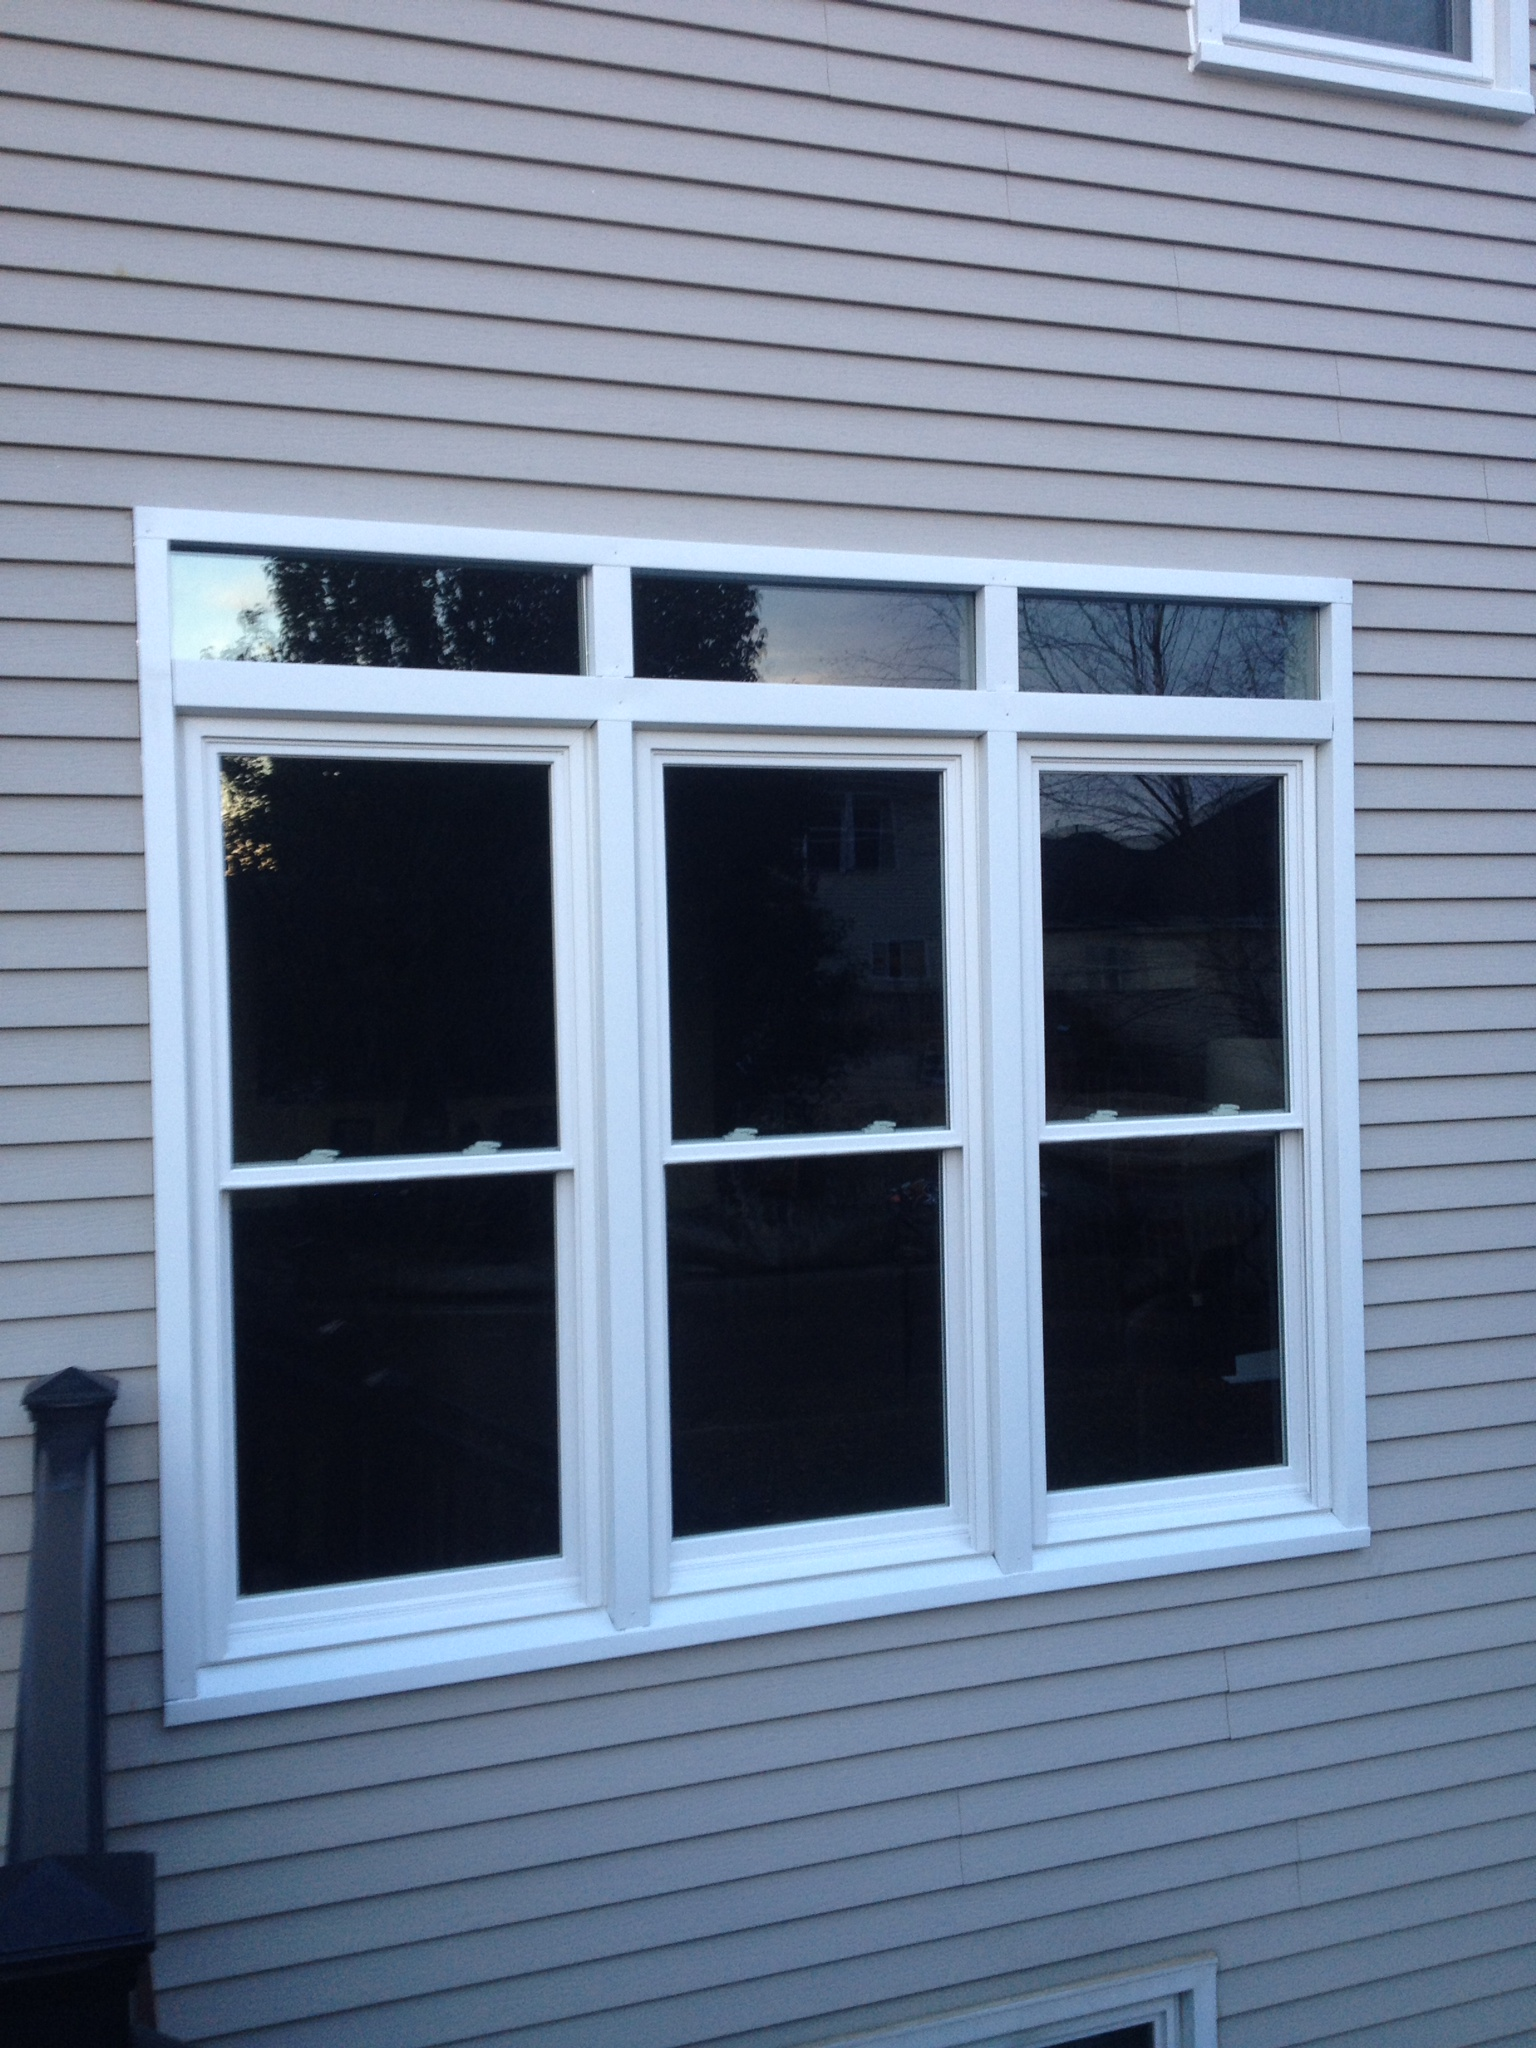 Advance home remodelers services montgomery illinois for Window samples for houses